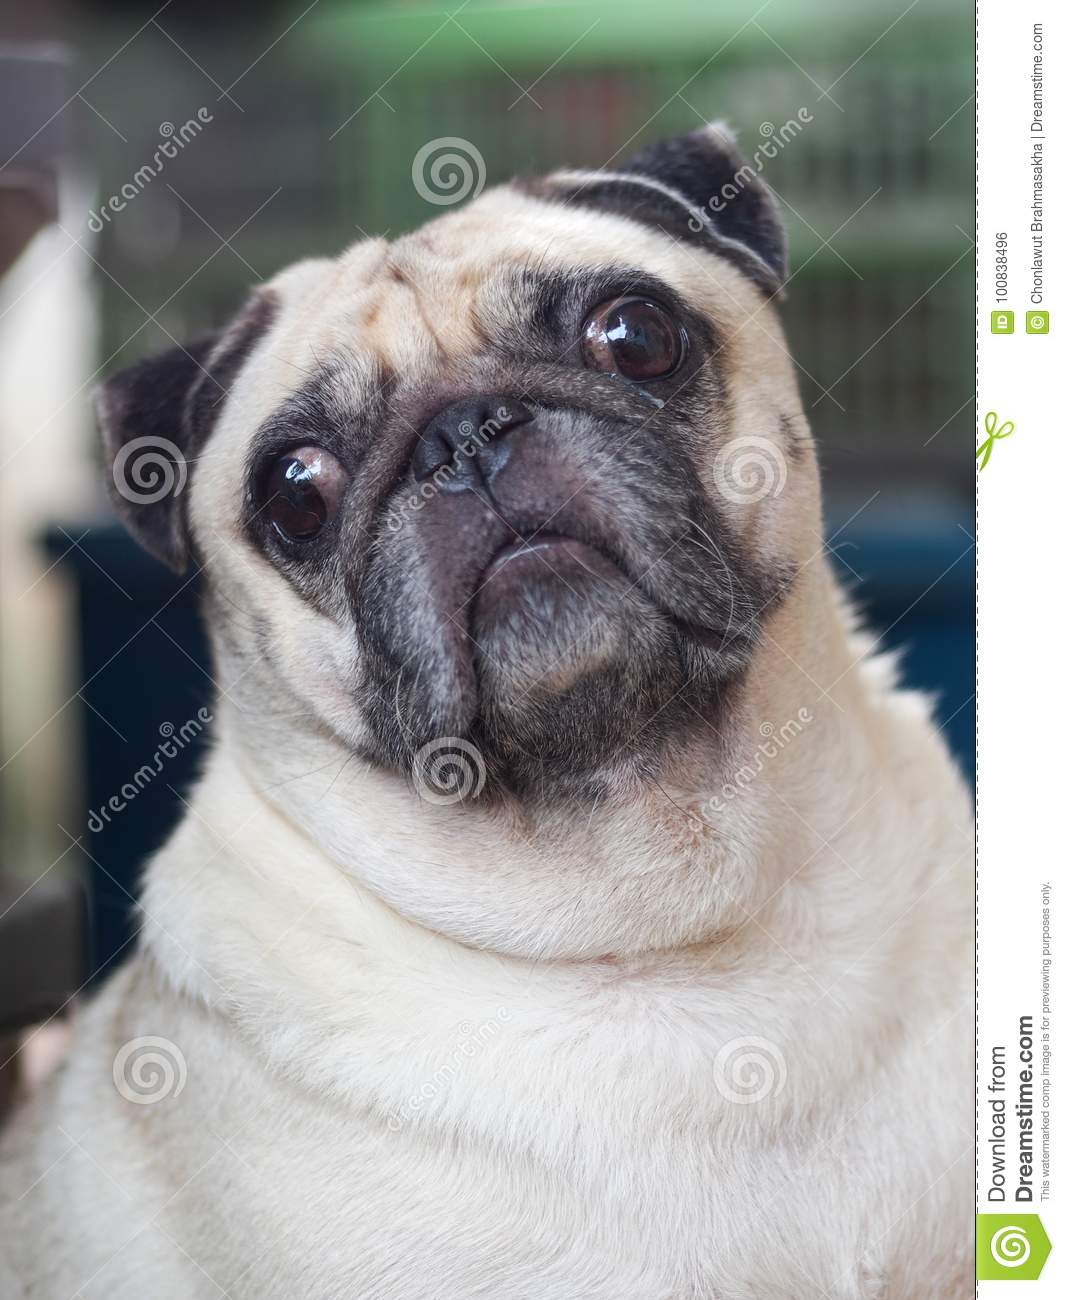 Portraits photo of a lovely white fat cute pug dog sitting outdoor garden home making sad and lonesome face under natural sunlight outdoor shallow depth of